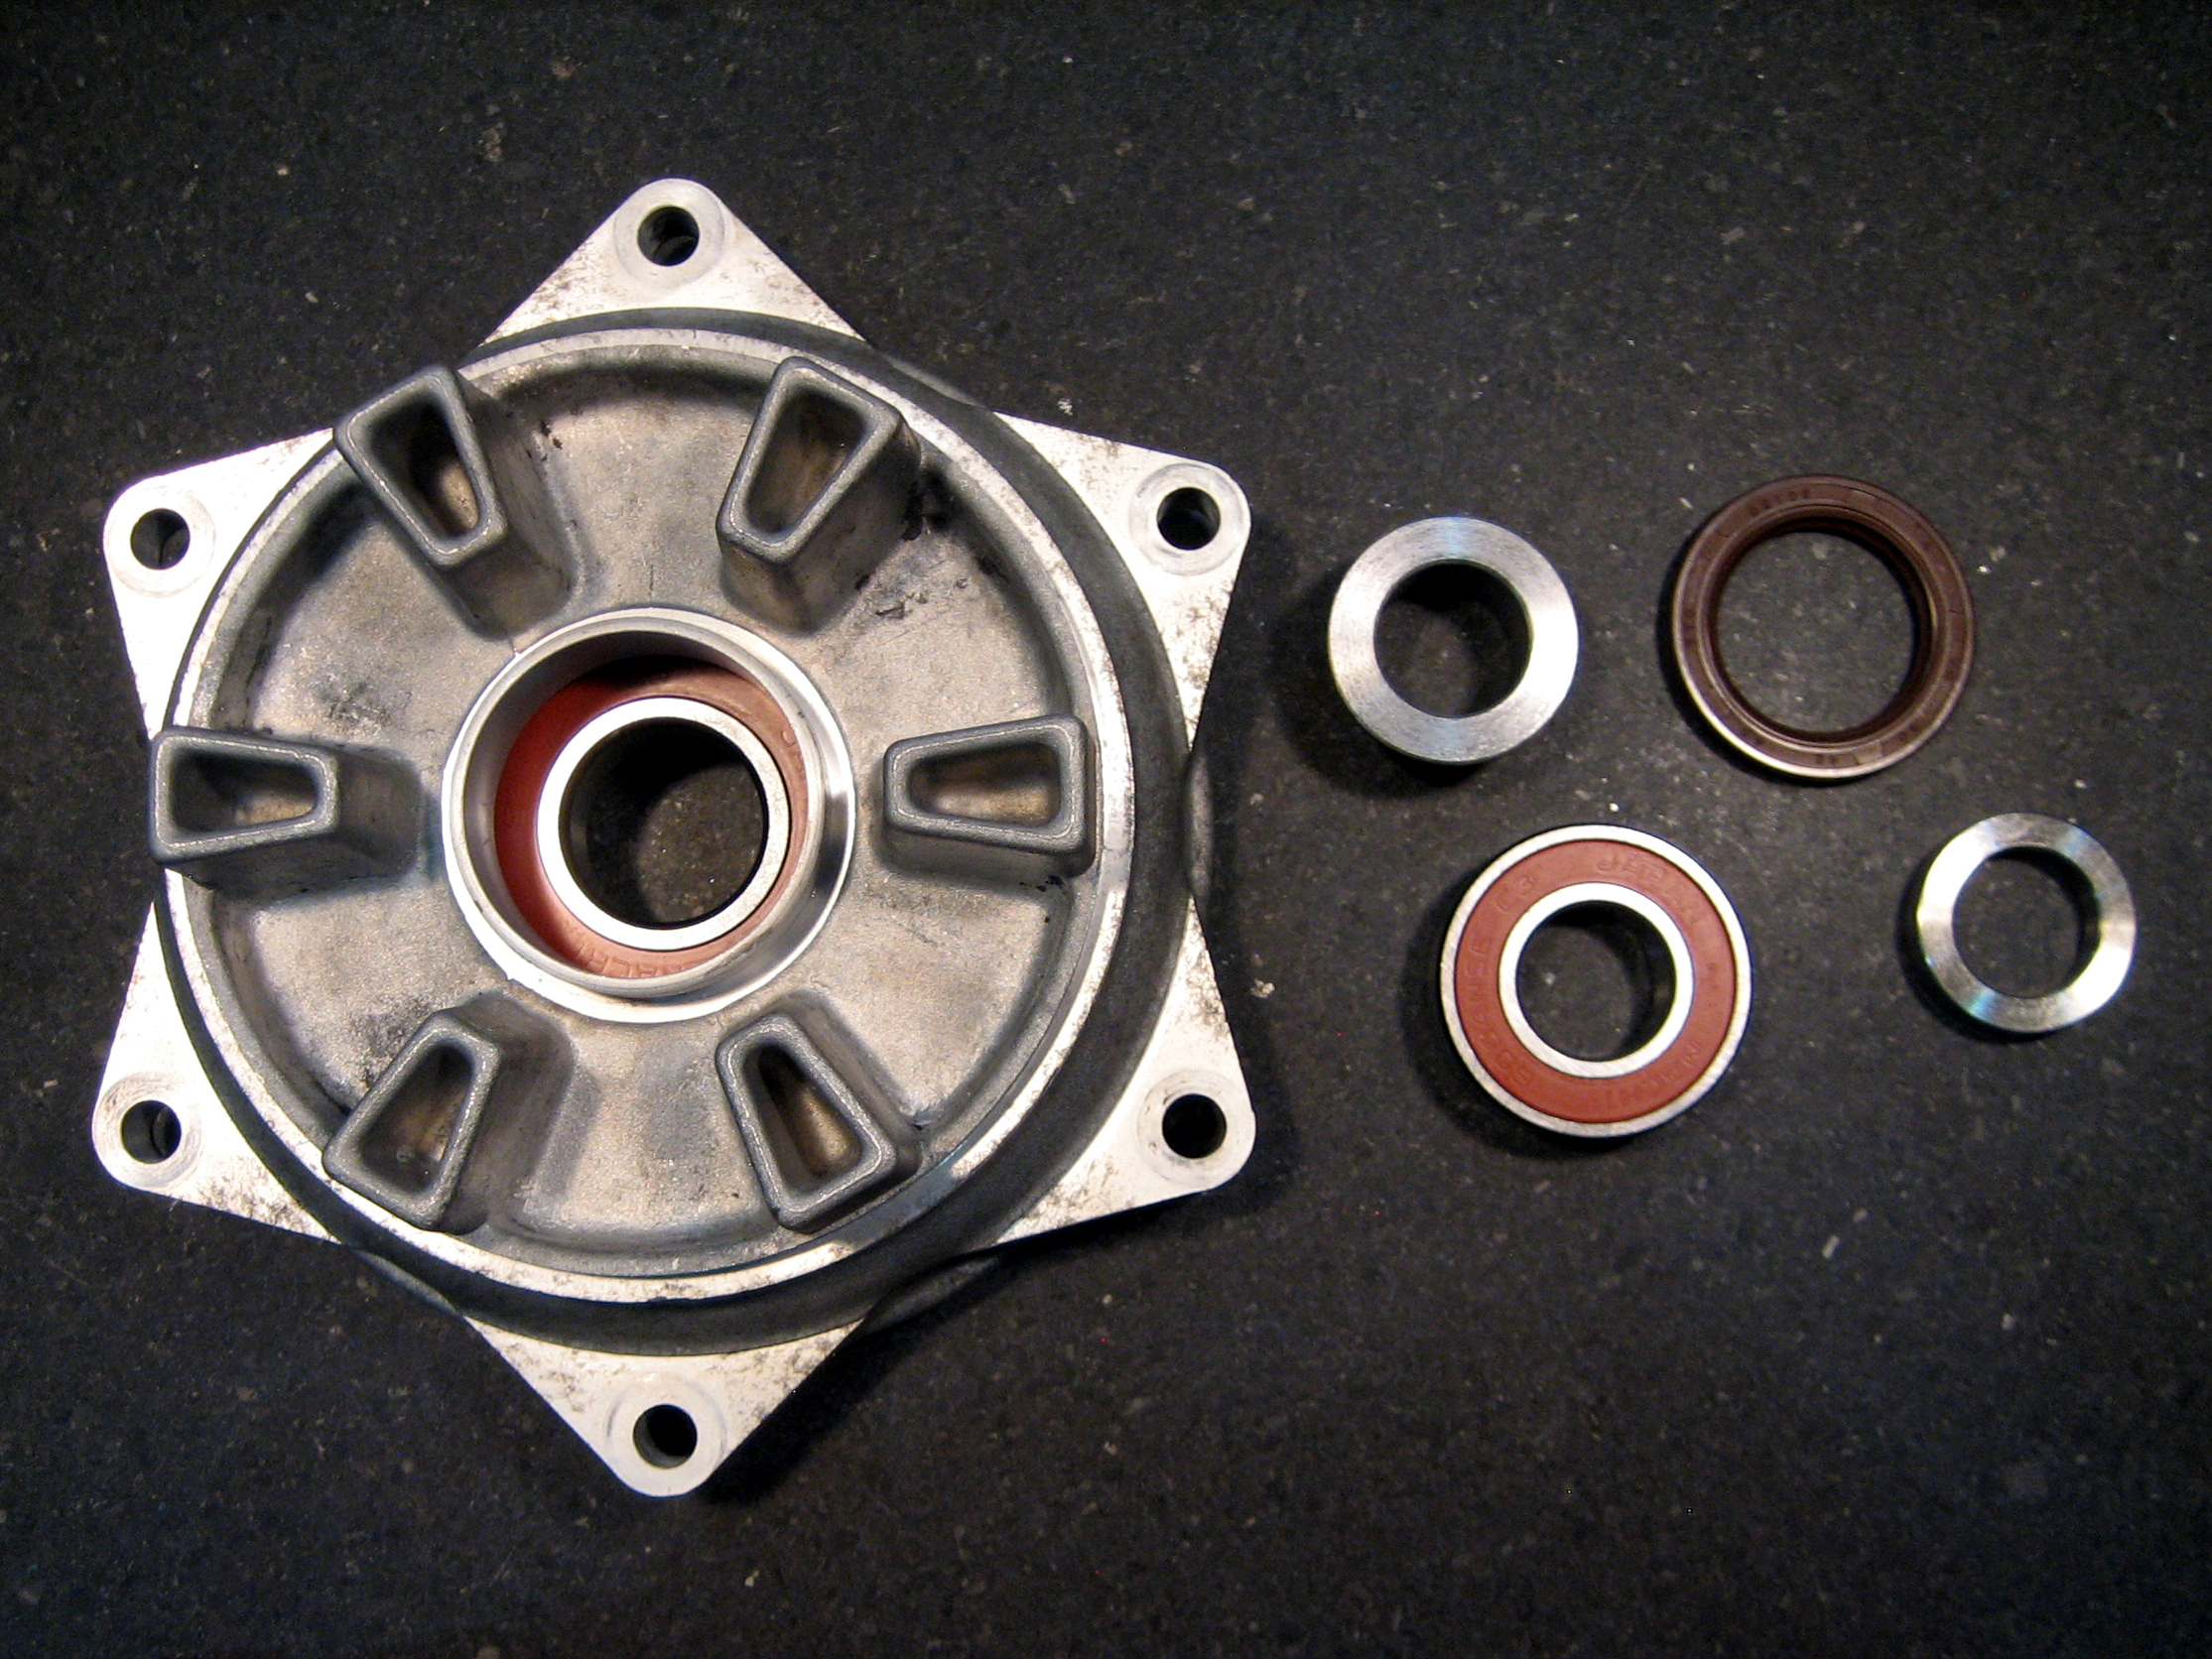 1996 and later DR650SE sprocket hub dual bearing upgrade prior to installation of inner bearing